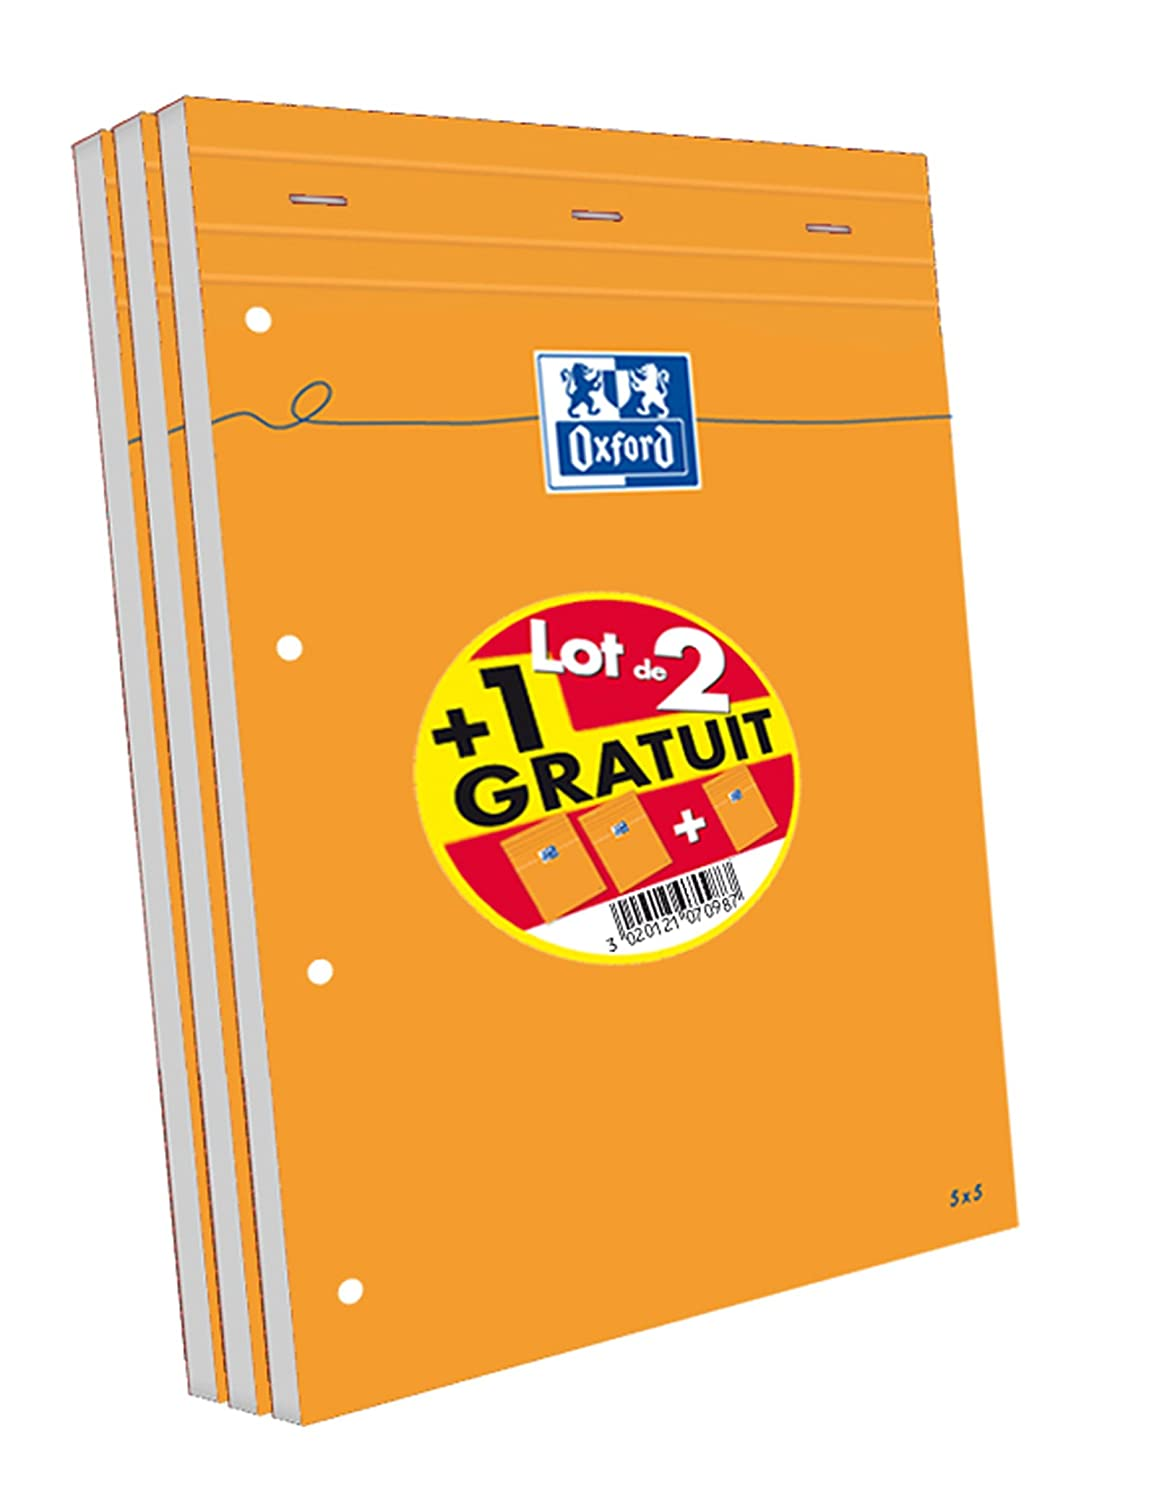 Oxford Scolaire 100107098 Lot de 3 Bloc-notes agrafé + perforé 210X315 160 Pages 80 G Q5/5